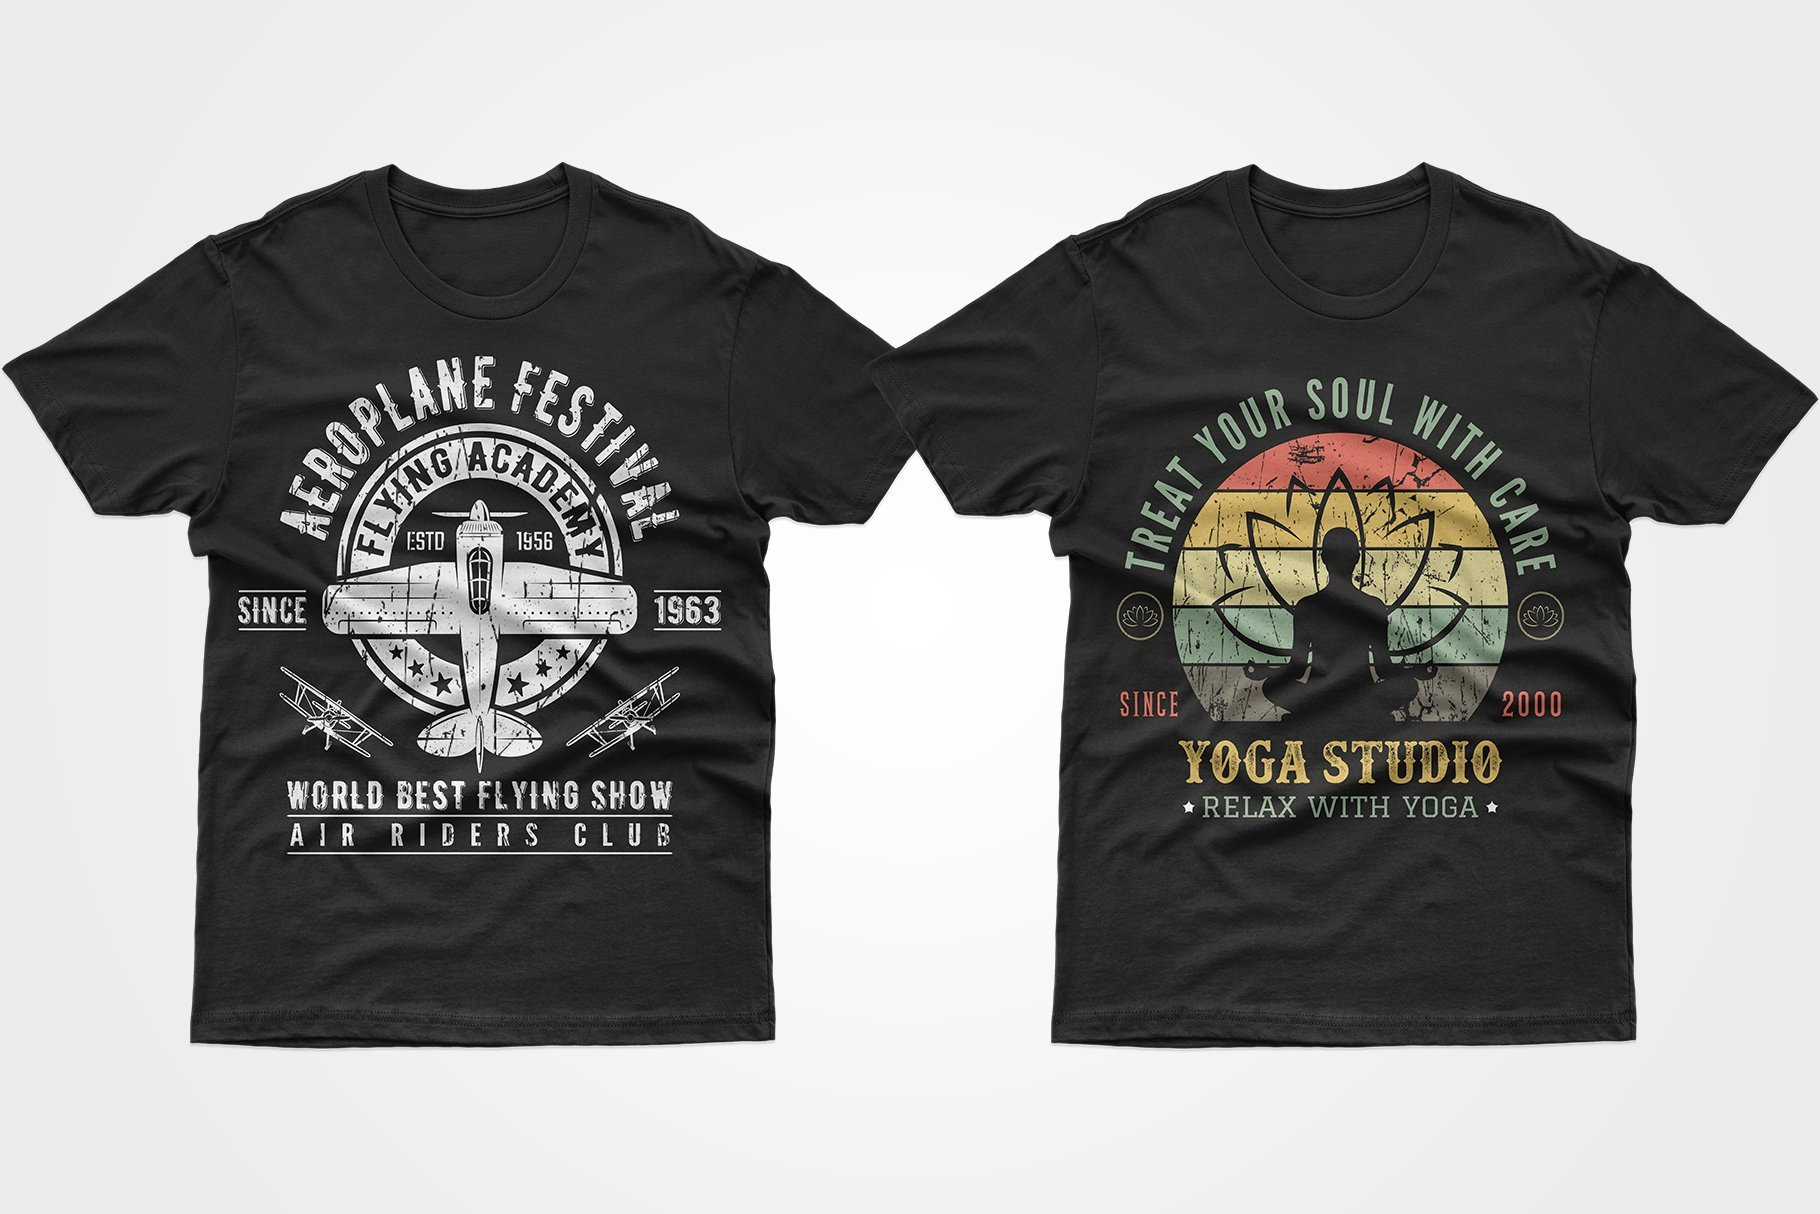 Two black T-shirts - one with an airplane, the other with a man in a lotus position.